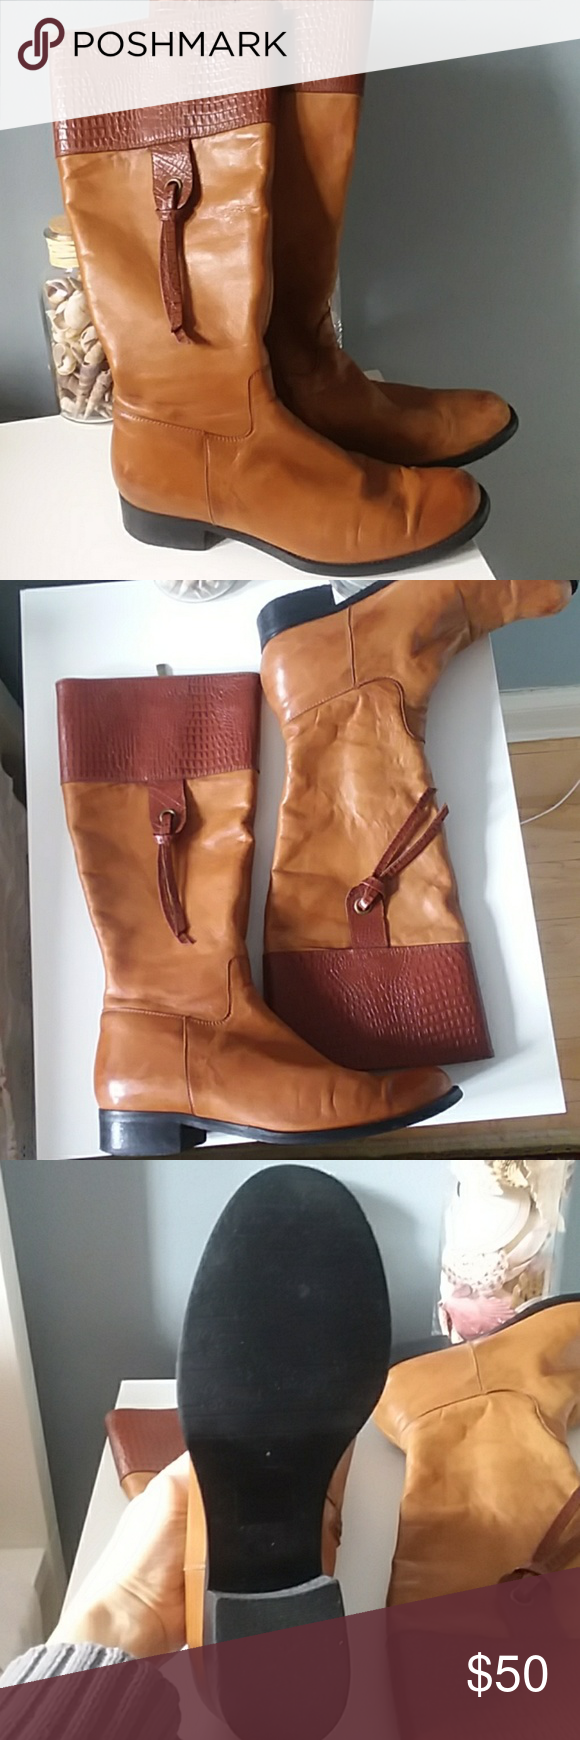 Pajar | Women leather boots Maria Pia brand by Pajar. Very good condition. Nice brick color with details. Soft and smooth leather. Very soft linning inside. Looks awsome on legs. Pajar Shoes Heeled Boots